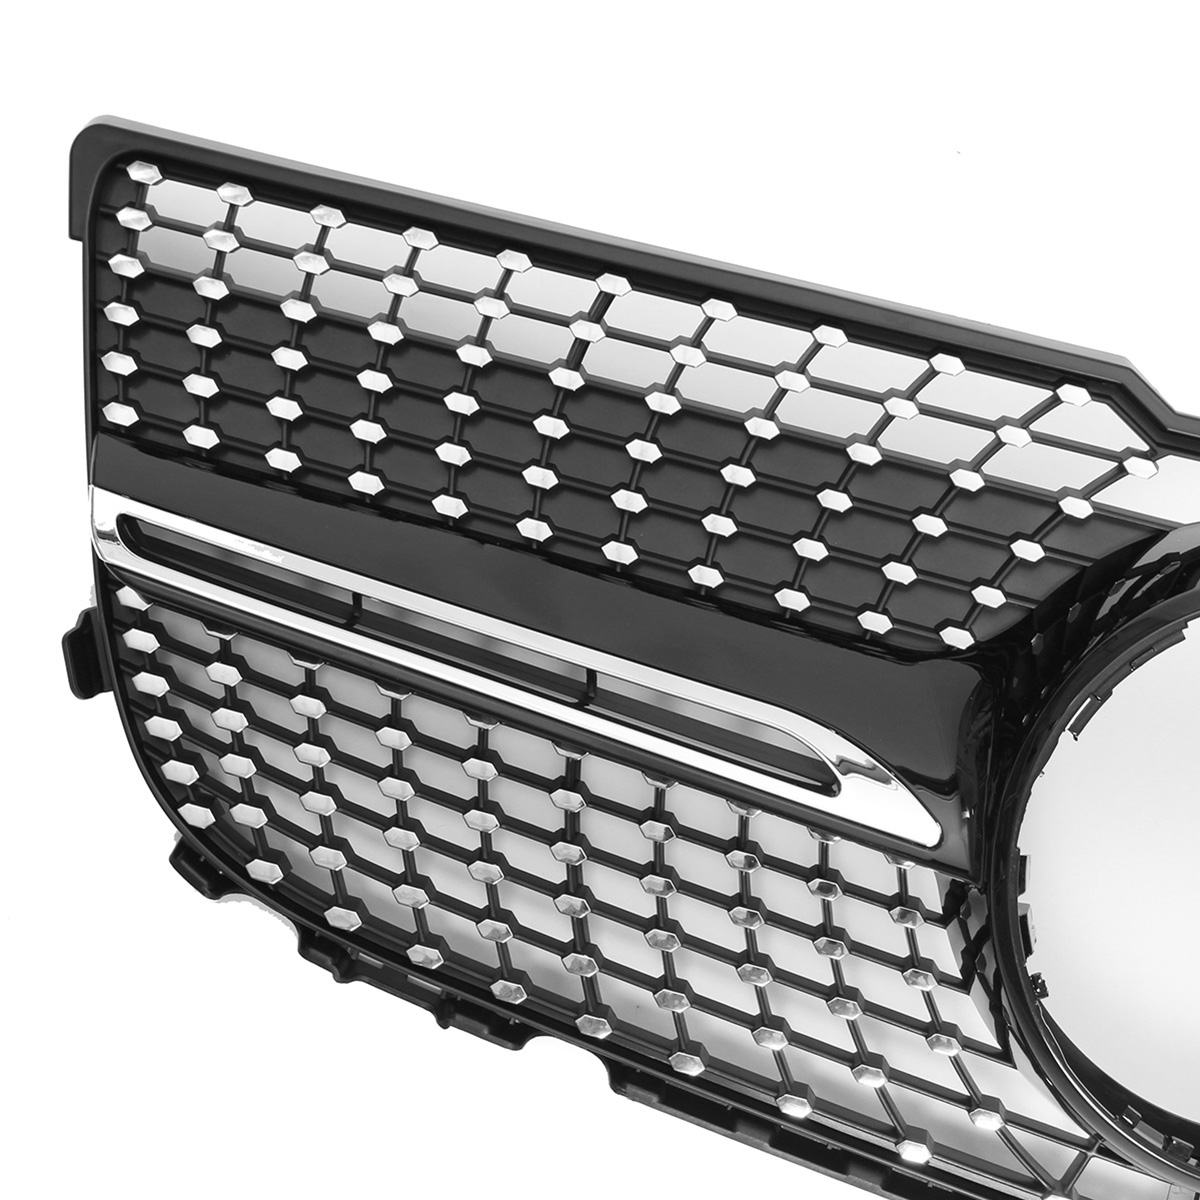 HIgh Quality X204 Diamond Grille Car Front Bumper Grill Grille For Mercedes For Benz GLK X204 GLK250 GLK300 GLK350 2013-2015